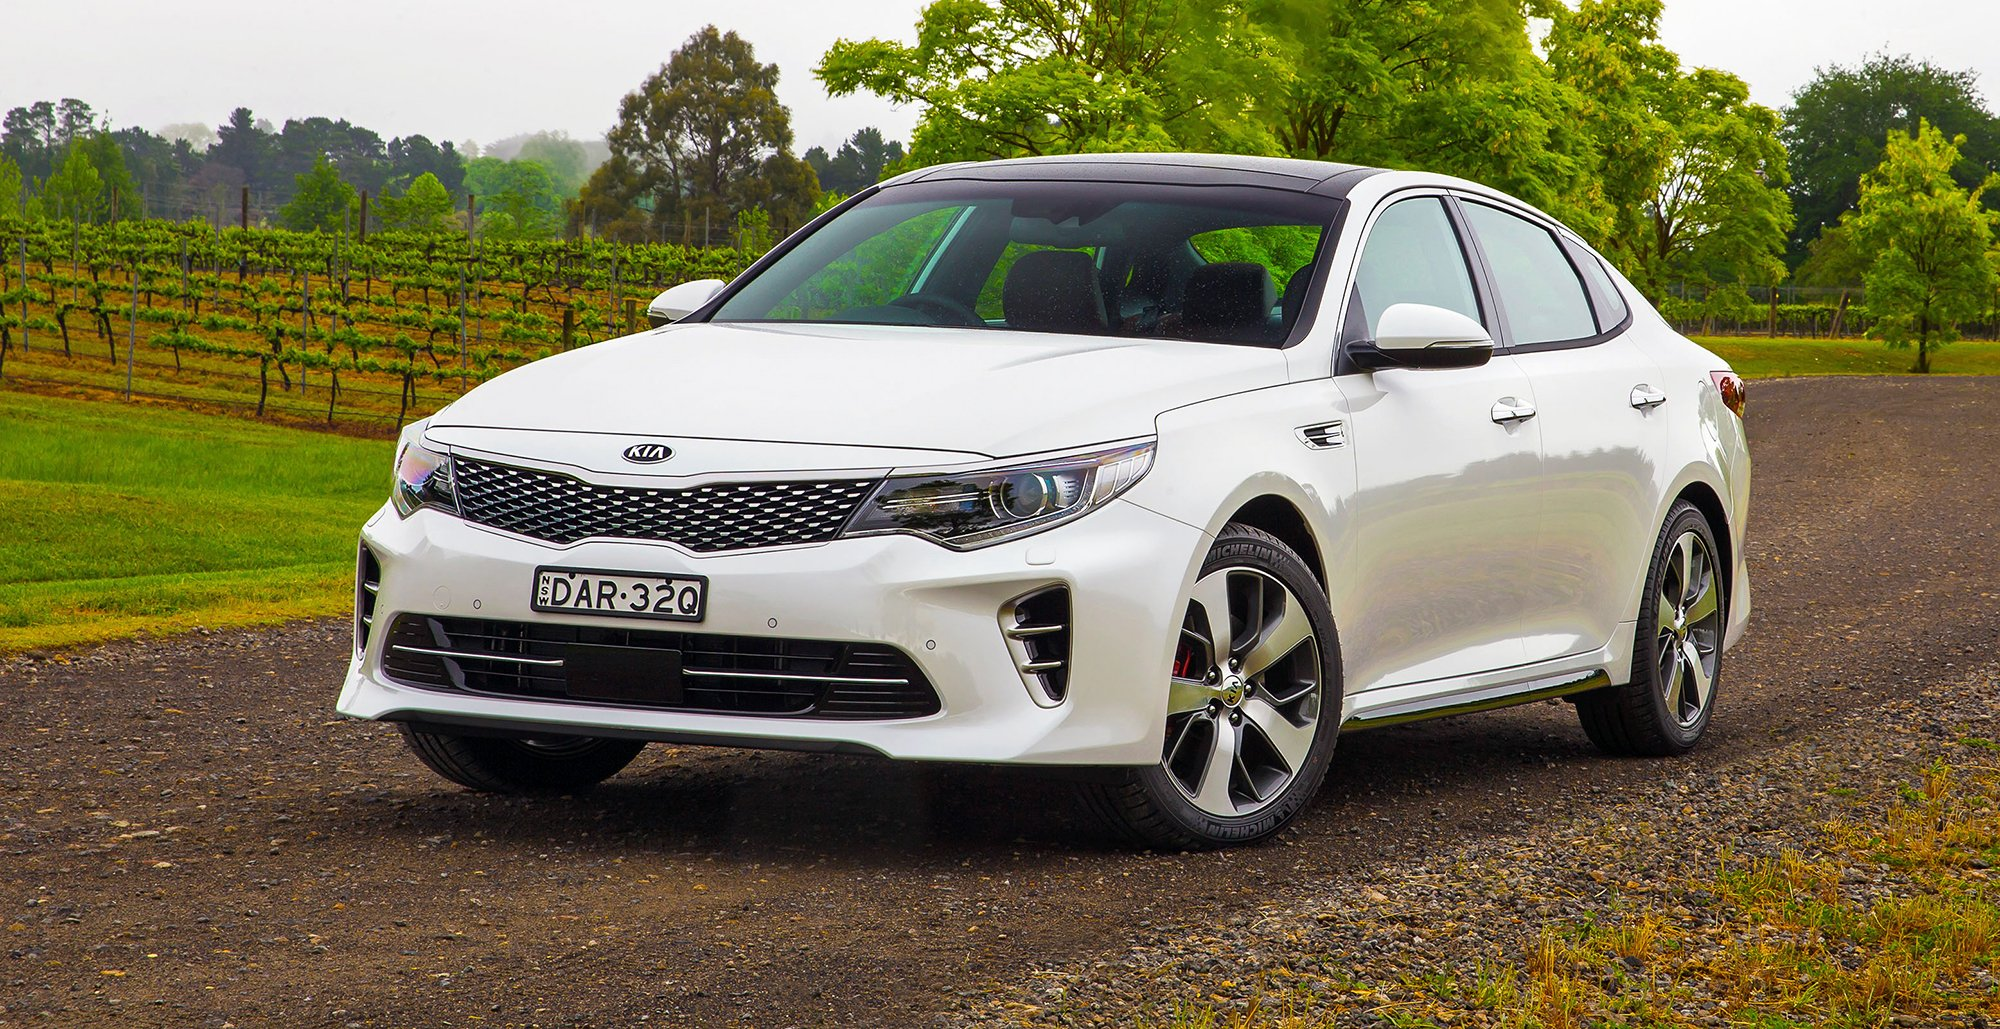 2016 kia optima pricing and specifications photos 1 of 26. Black Bedroom Furniture Sets. Home Design Ideas